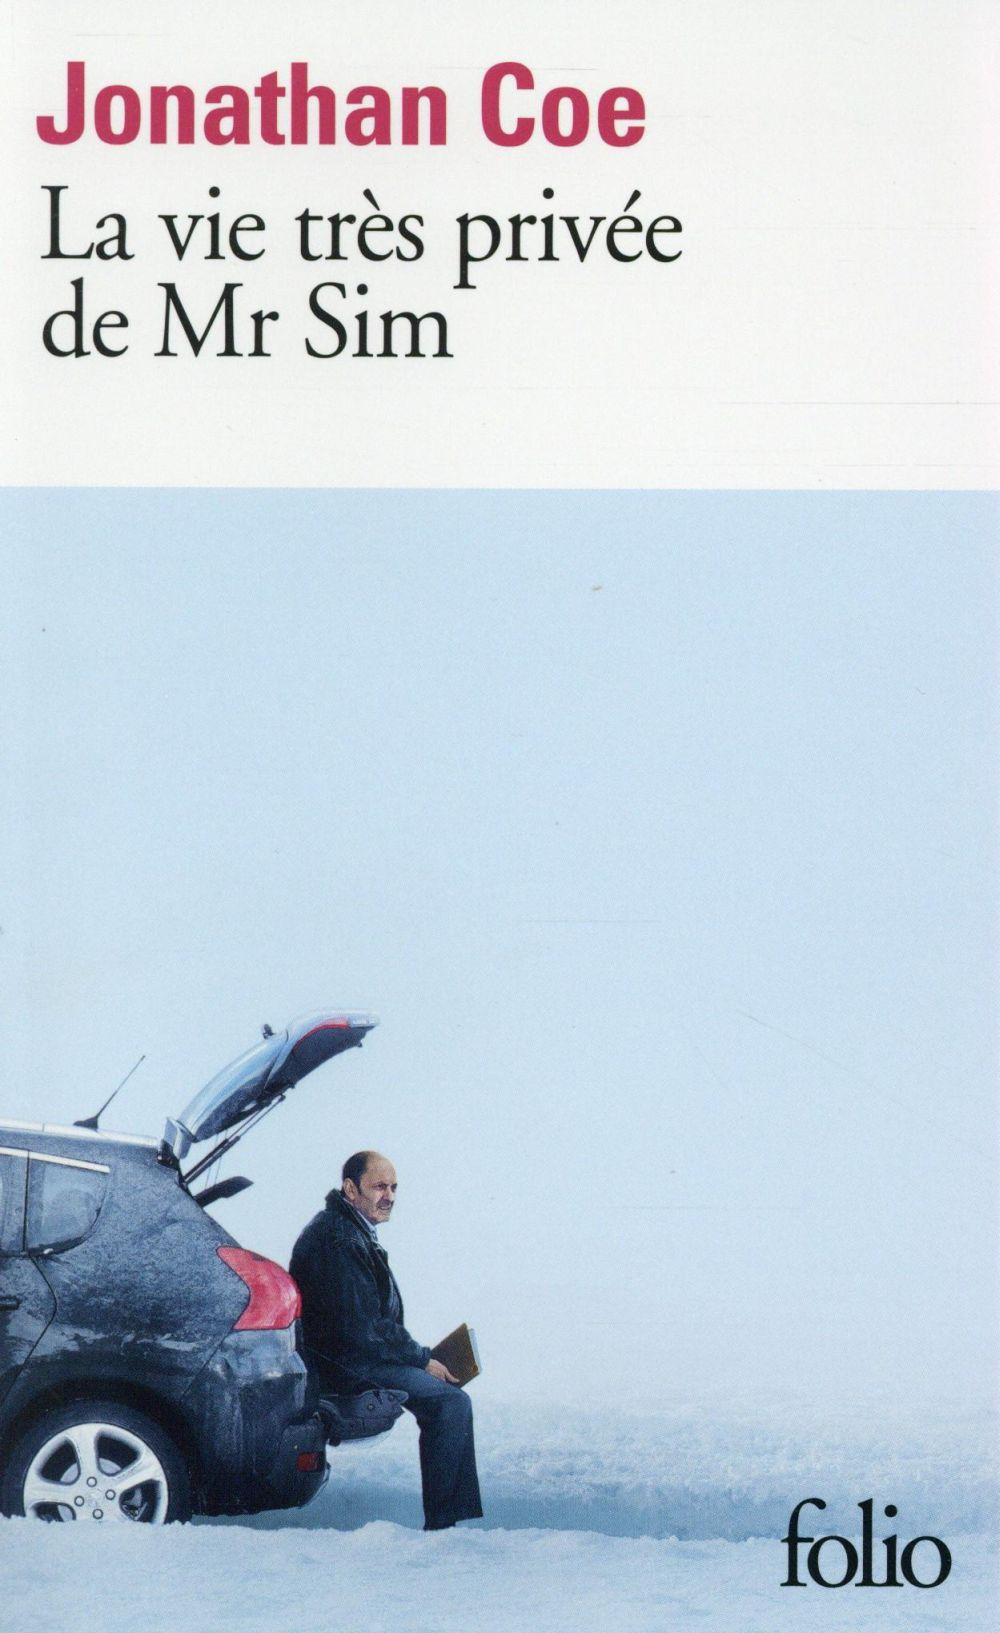 LA VIE TRES PRIVEE DE MR SIM